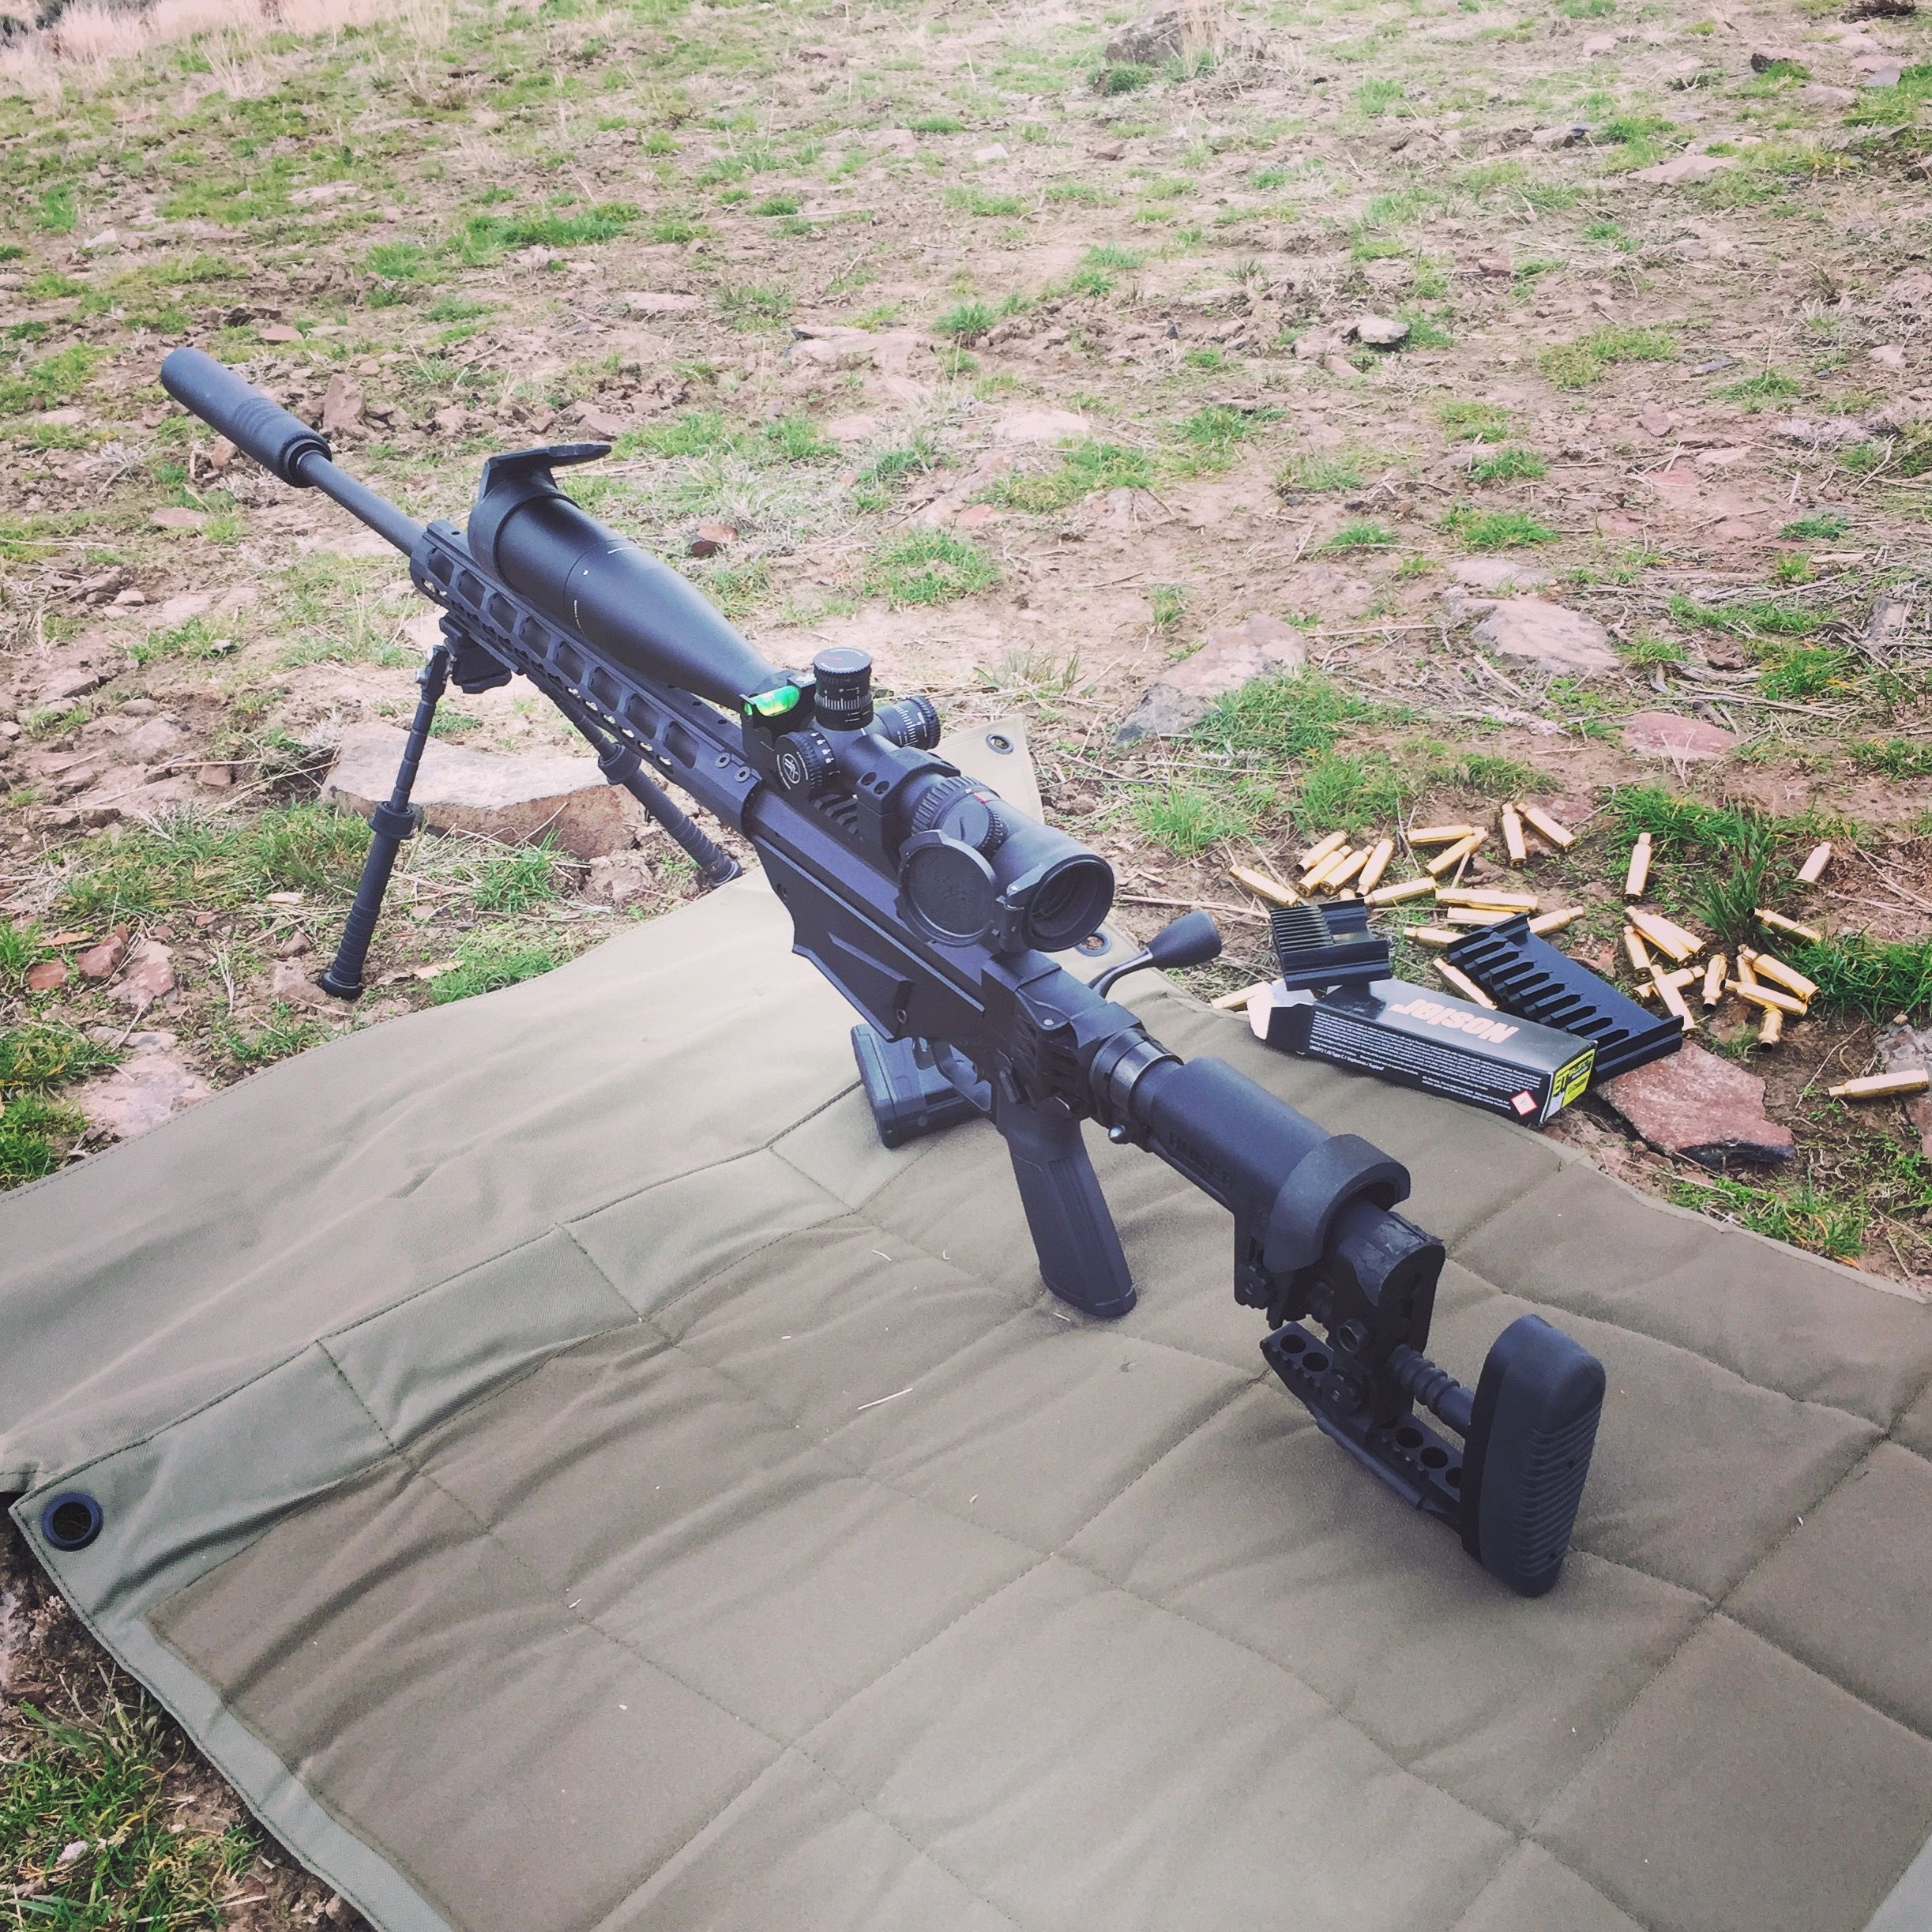 Tuning Up A Ruger Precision Rifle In 6.5 Creedmoor.Loading